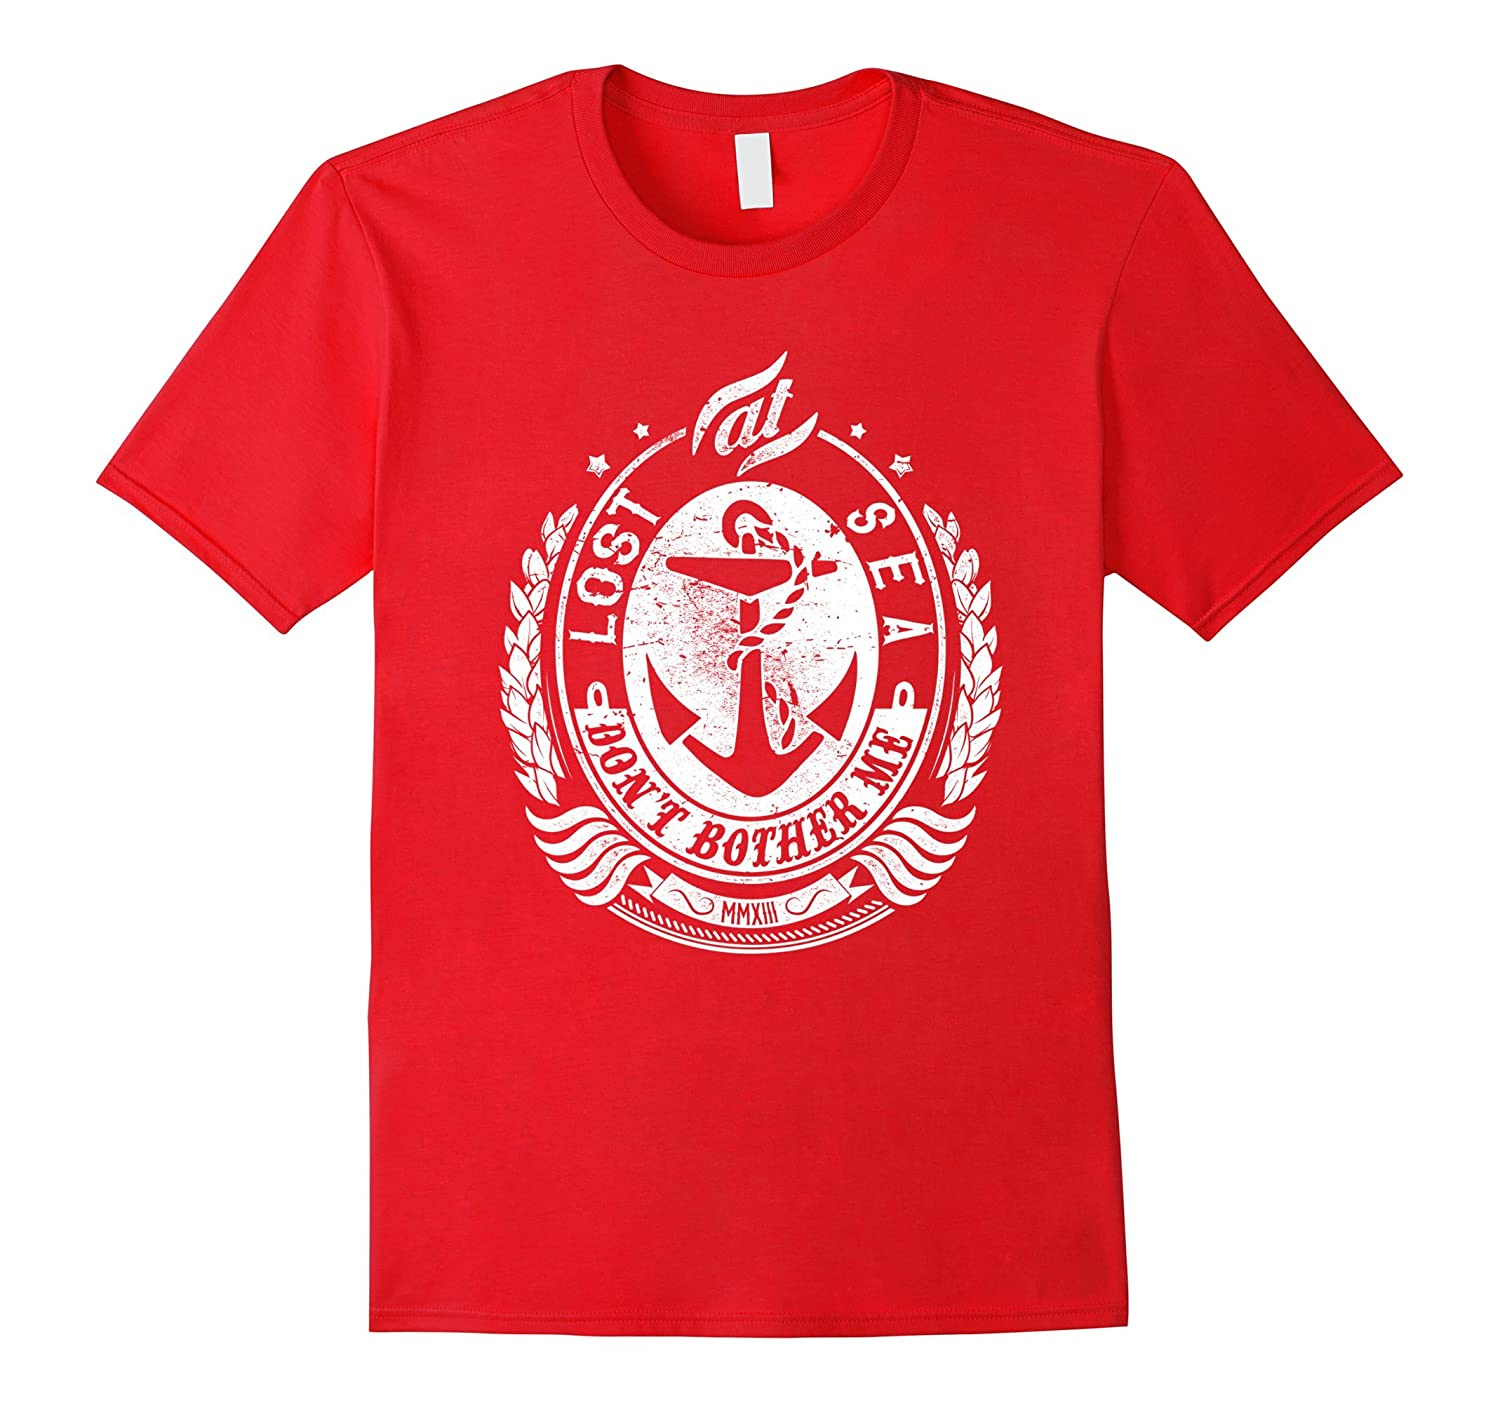 Lost At Sea Don't Bother Me T-Shirt | Shirts For Sailors-Art